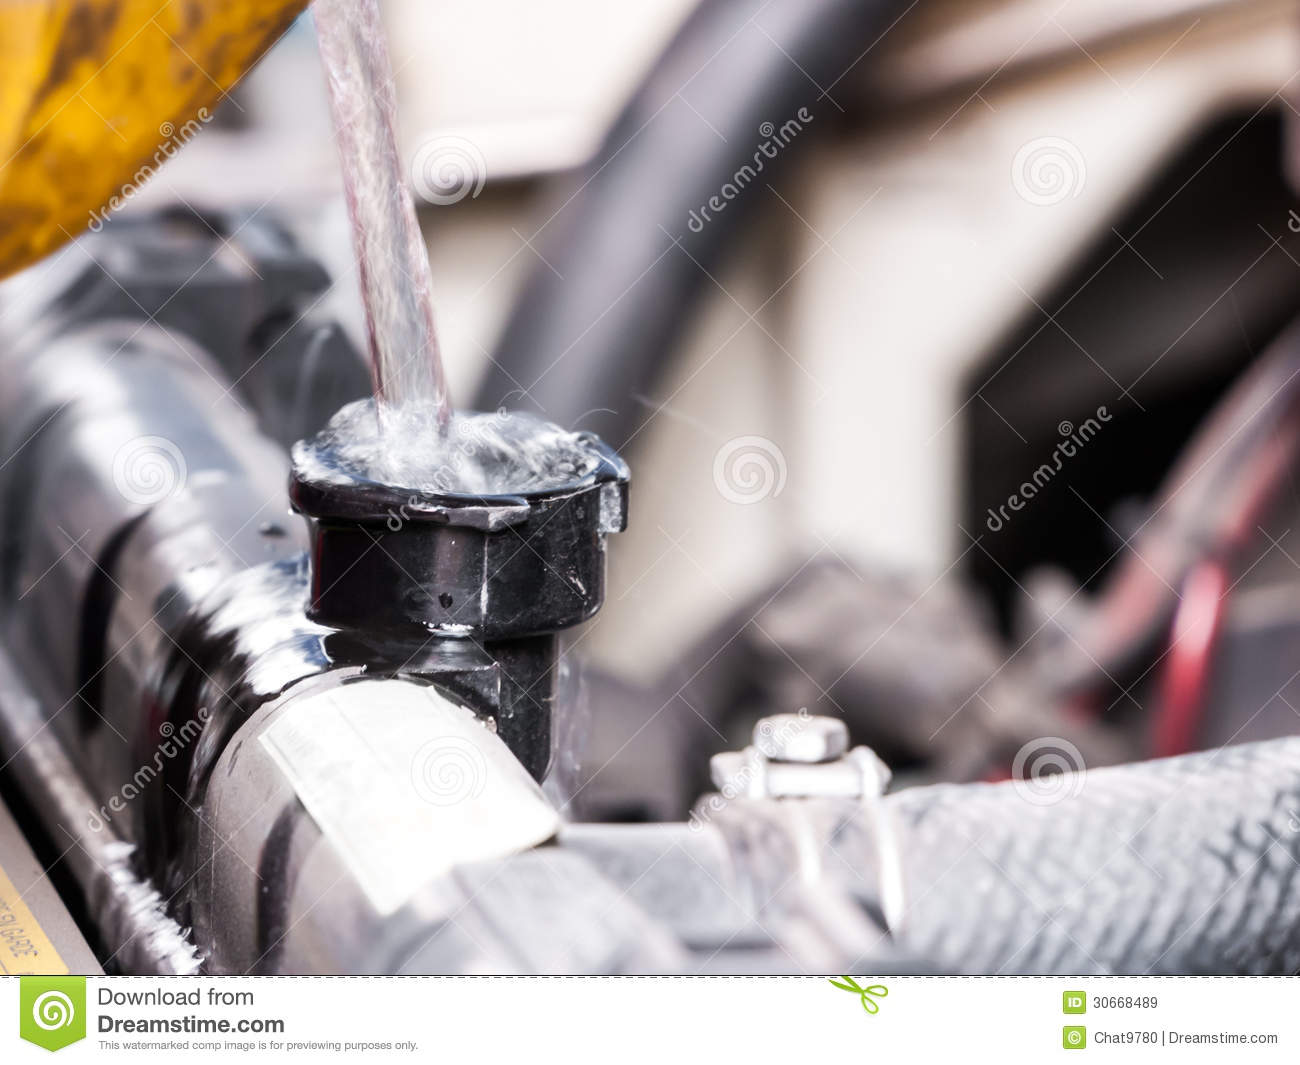 Fill Up Water Into Car Radiator Stock Image - Image of open